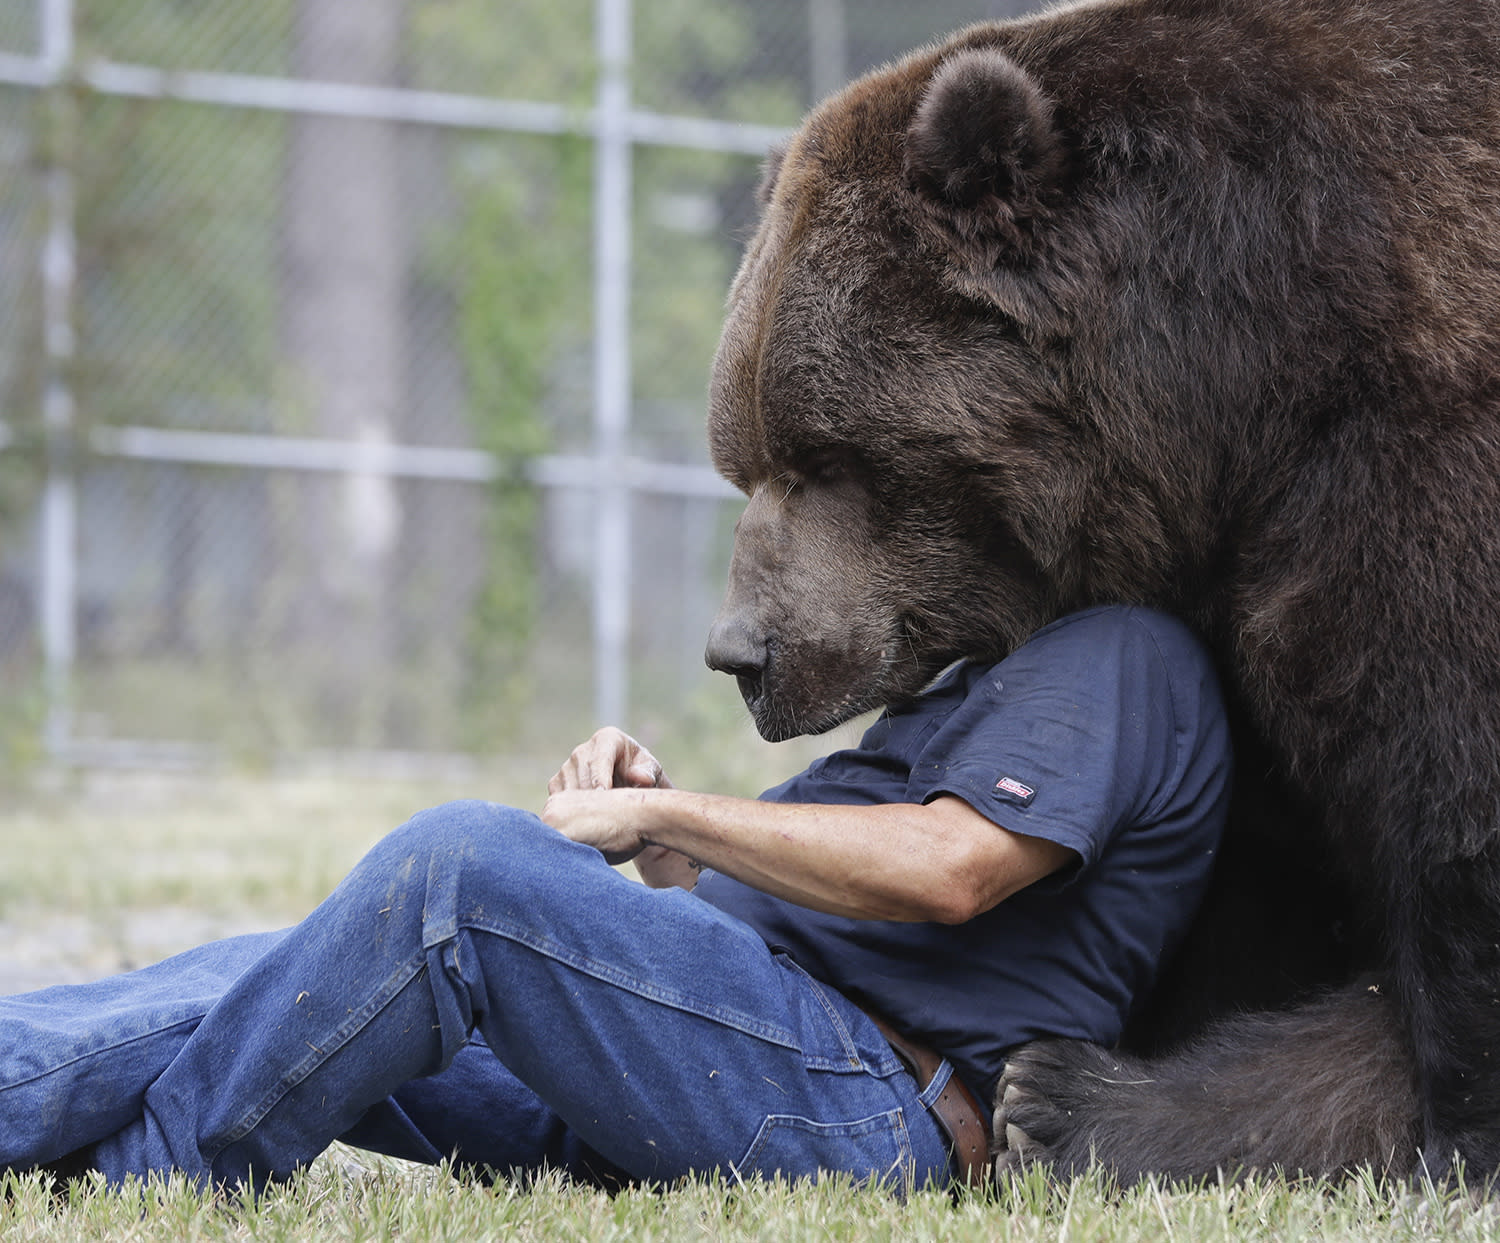 <p>Jim Kowalczik plays with Jimbo, a 1500-pound Kodiak bear, at the Orphaned Wildlife Center in Otisville, N.Y., Sept. 7, 2016. (AP Photo/Mike Groll) </p>